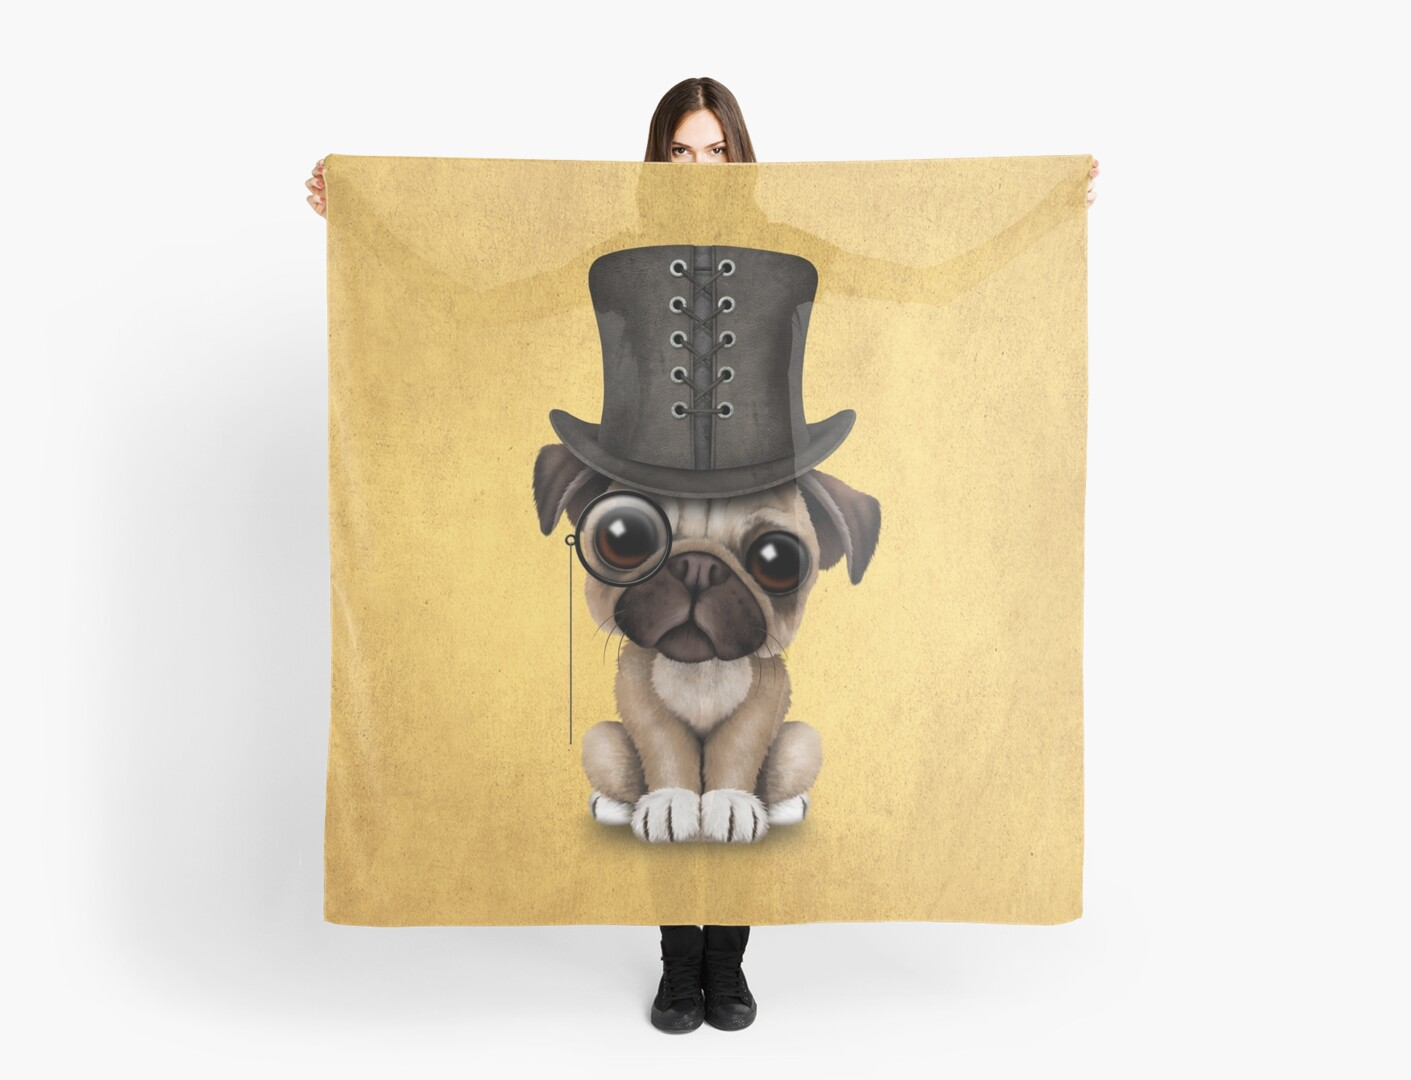 bc634da8cc1 Cute Pug Puppy with Monocle and Top Hat on Yellow